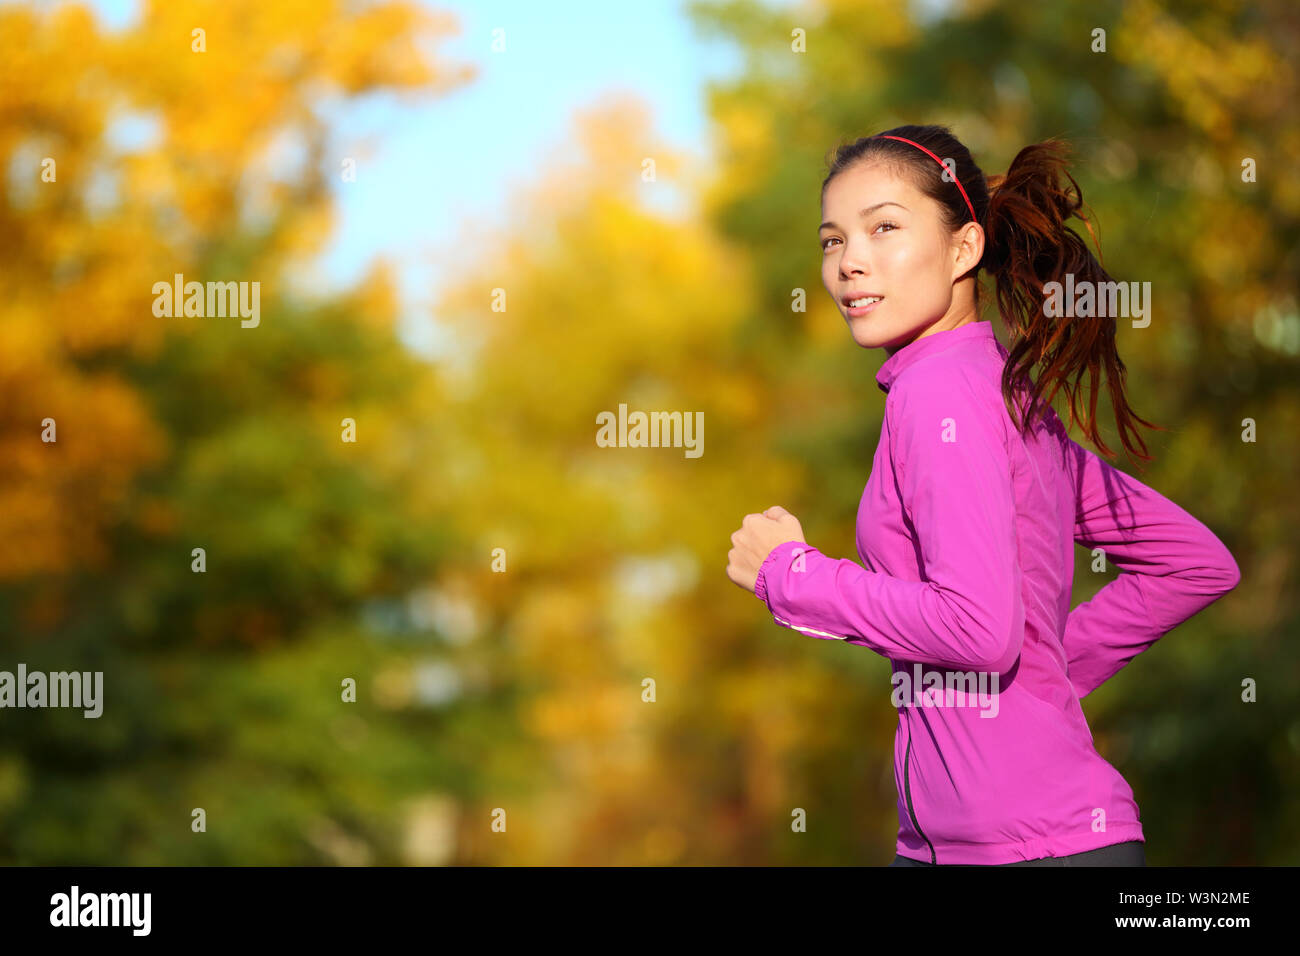 Aspirations - Aspirational woman runner running looking and thinking about future goals. Female athlete jogging in autumn forest in fall color foliage. Beautiful multiracial Asian Caucasian jogger. - Stock Image